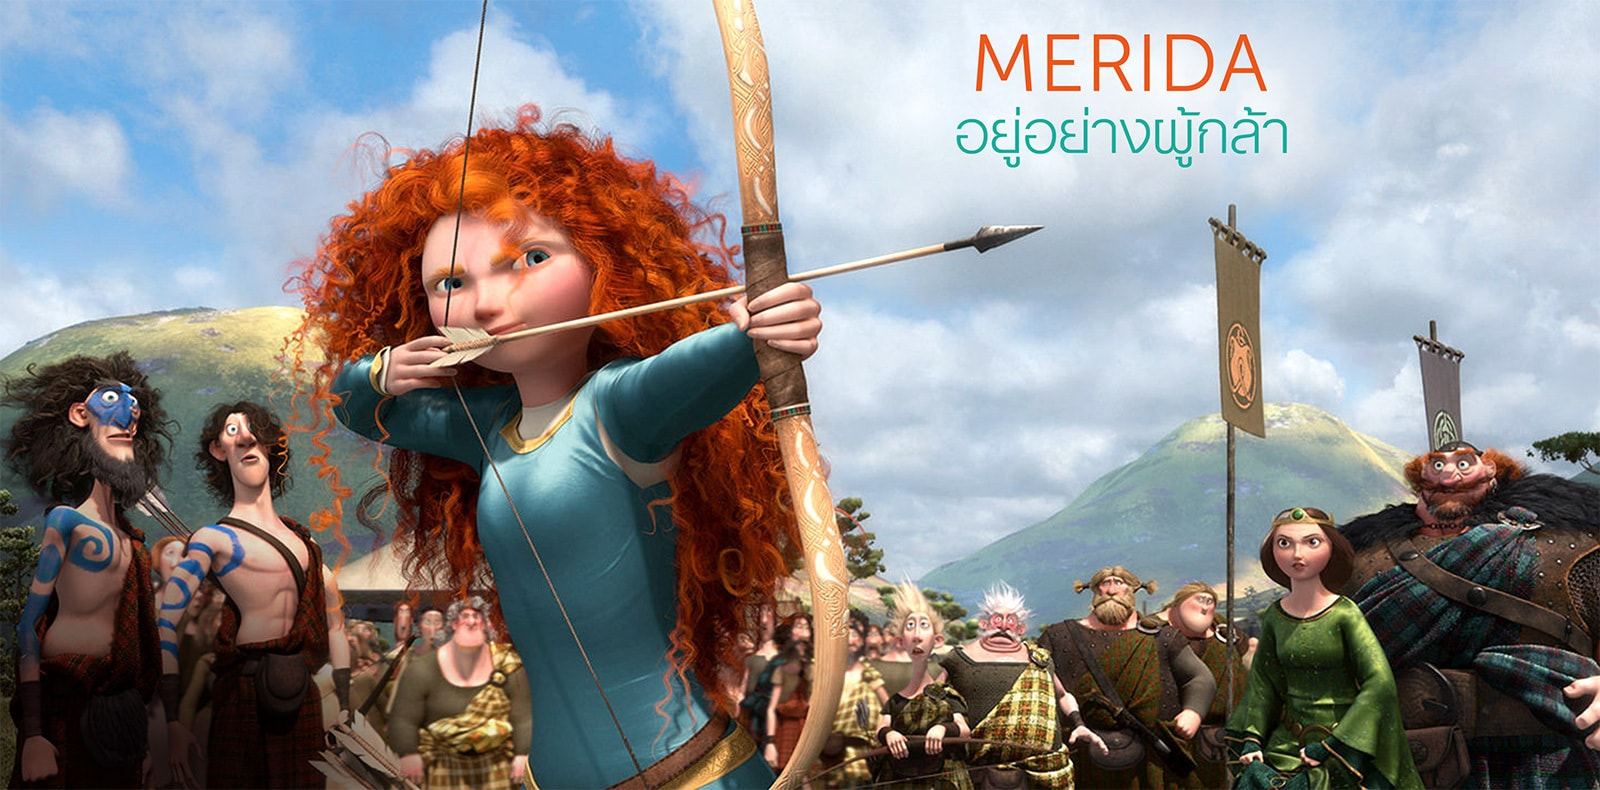 MOVIE ART Merida